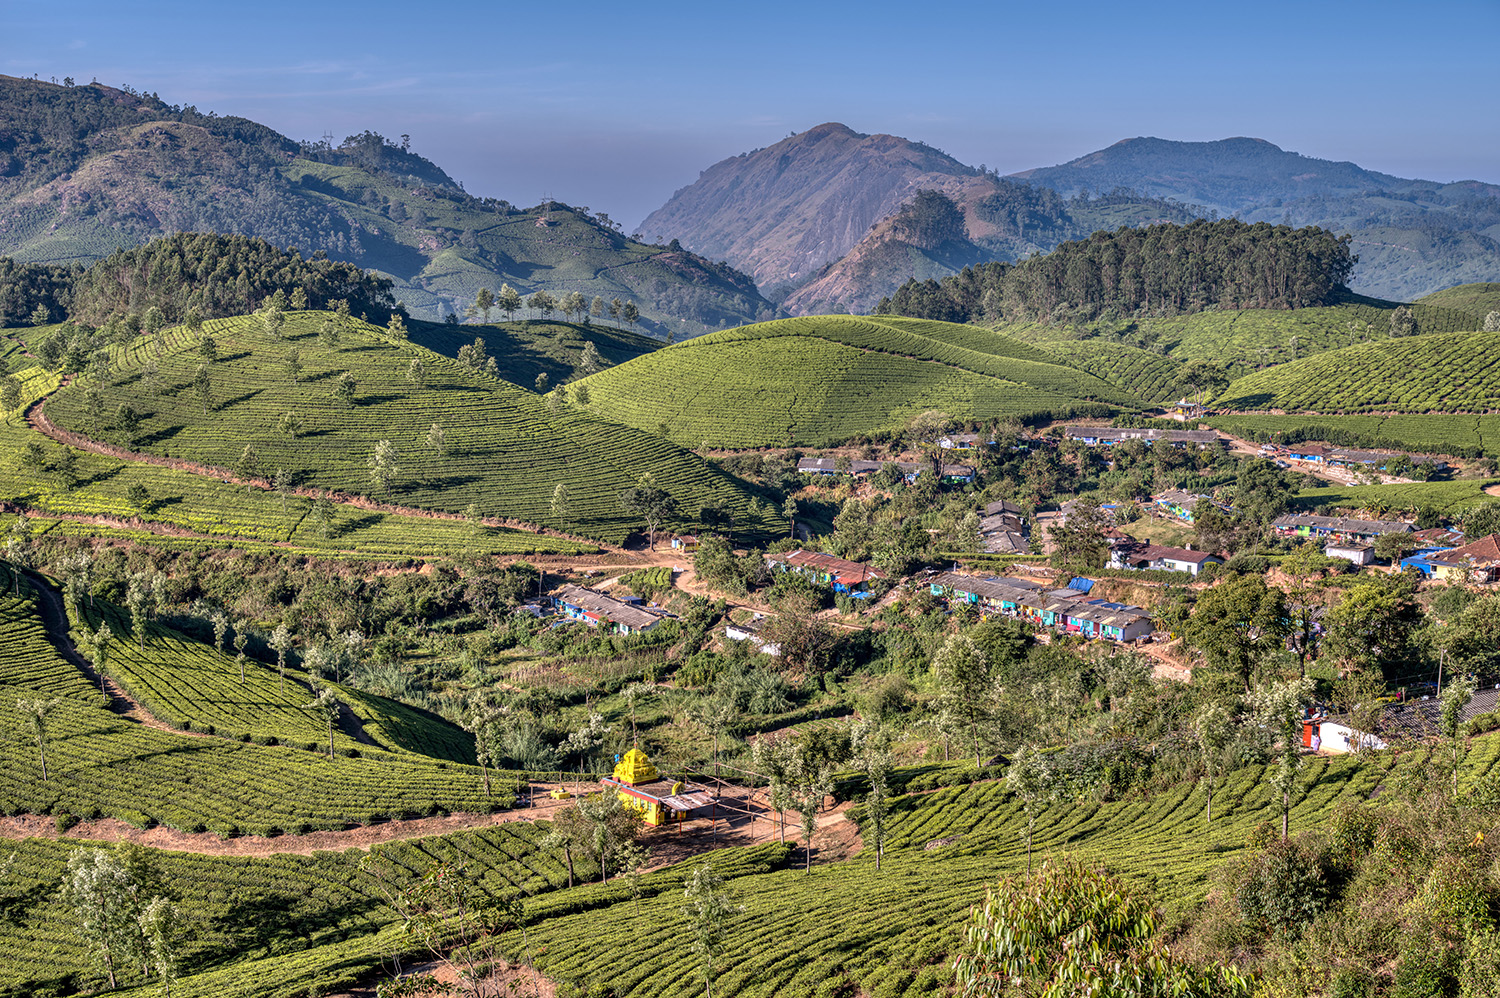 Tea plantation with worker's village and hindu temple, India